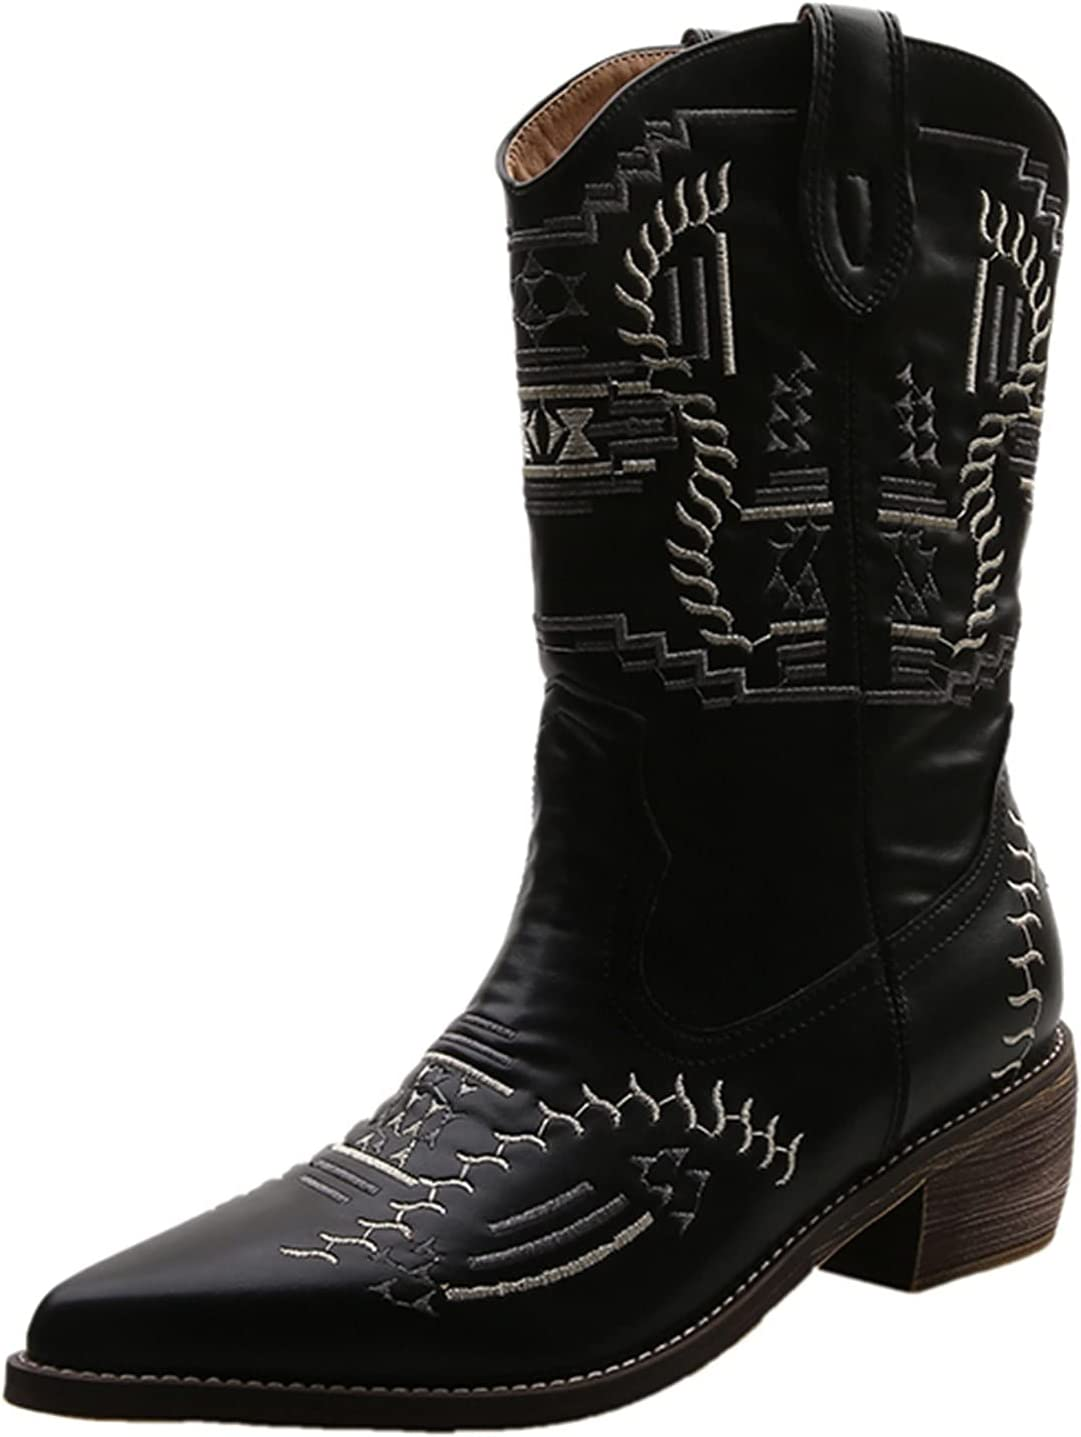 LODDD Women's Chunky High Heel Pointed Toe Mid Boots Breathable Thick-Soled Retro Embroidery Slip-on Combat Boots